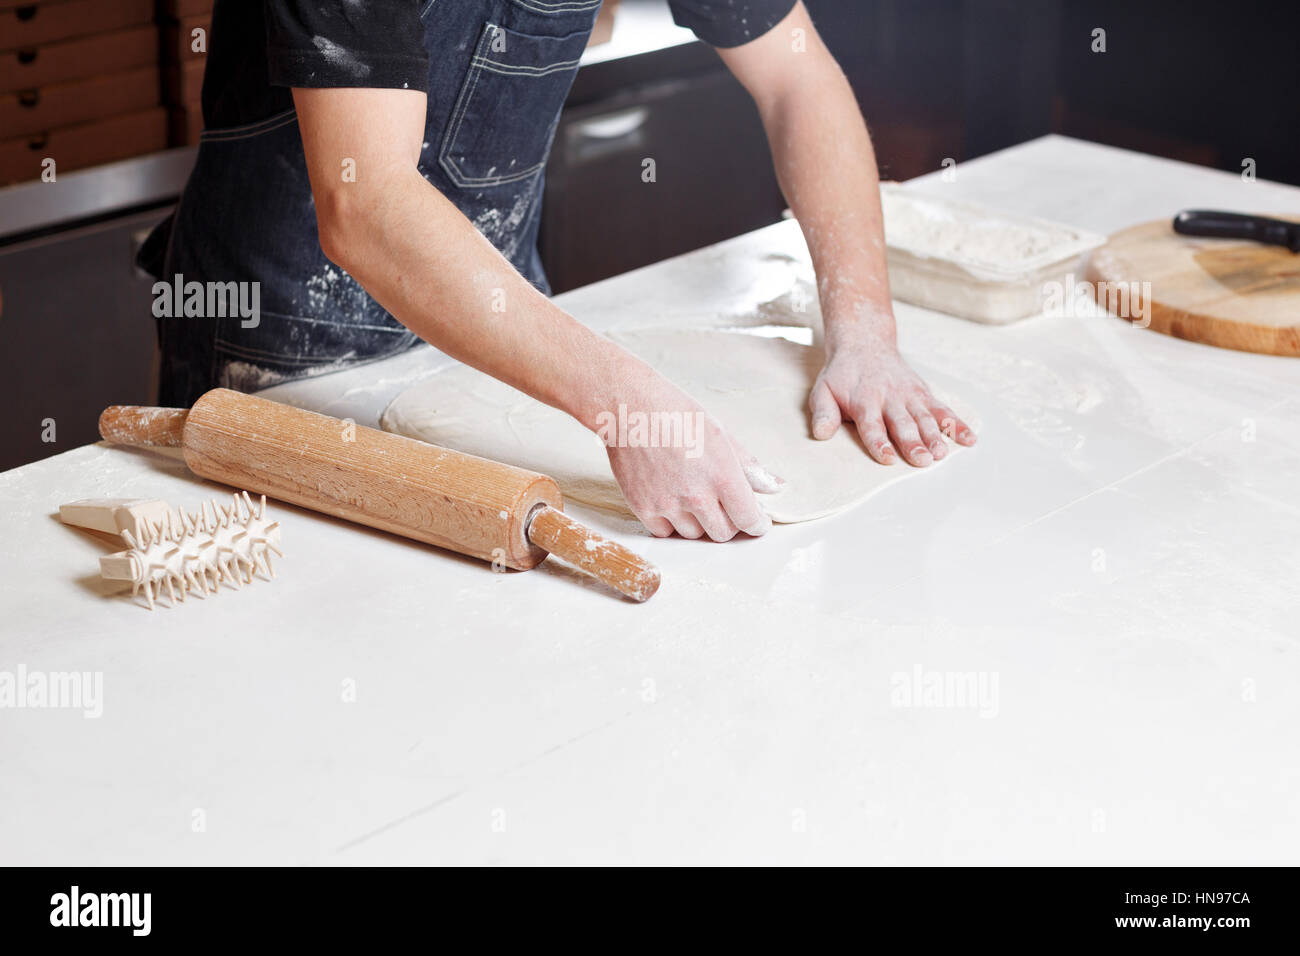 Pizza Cut Out Stockfotos & Pizza Cut Out Bilder - Seite 2 - Alamy